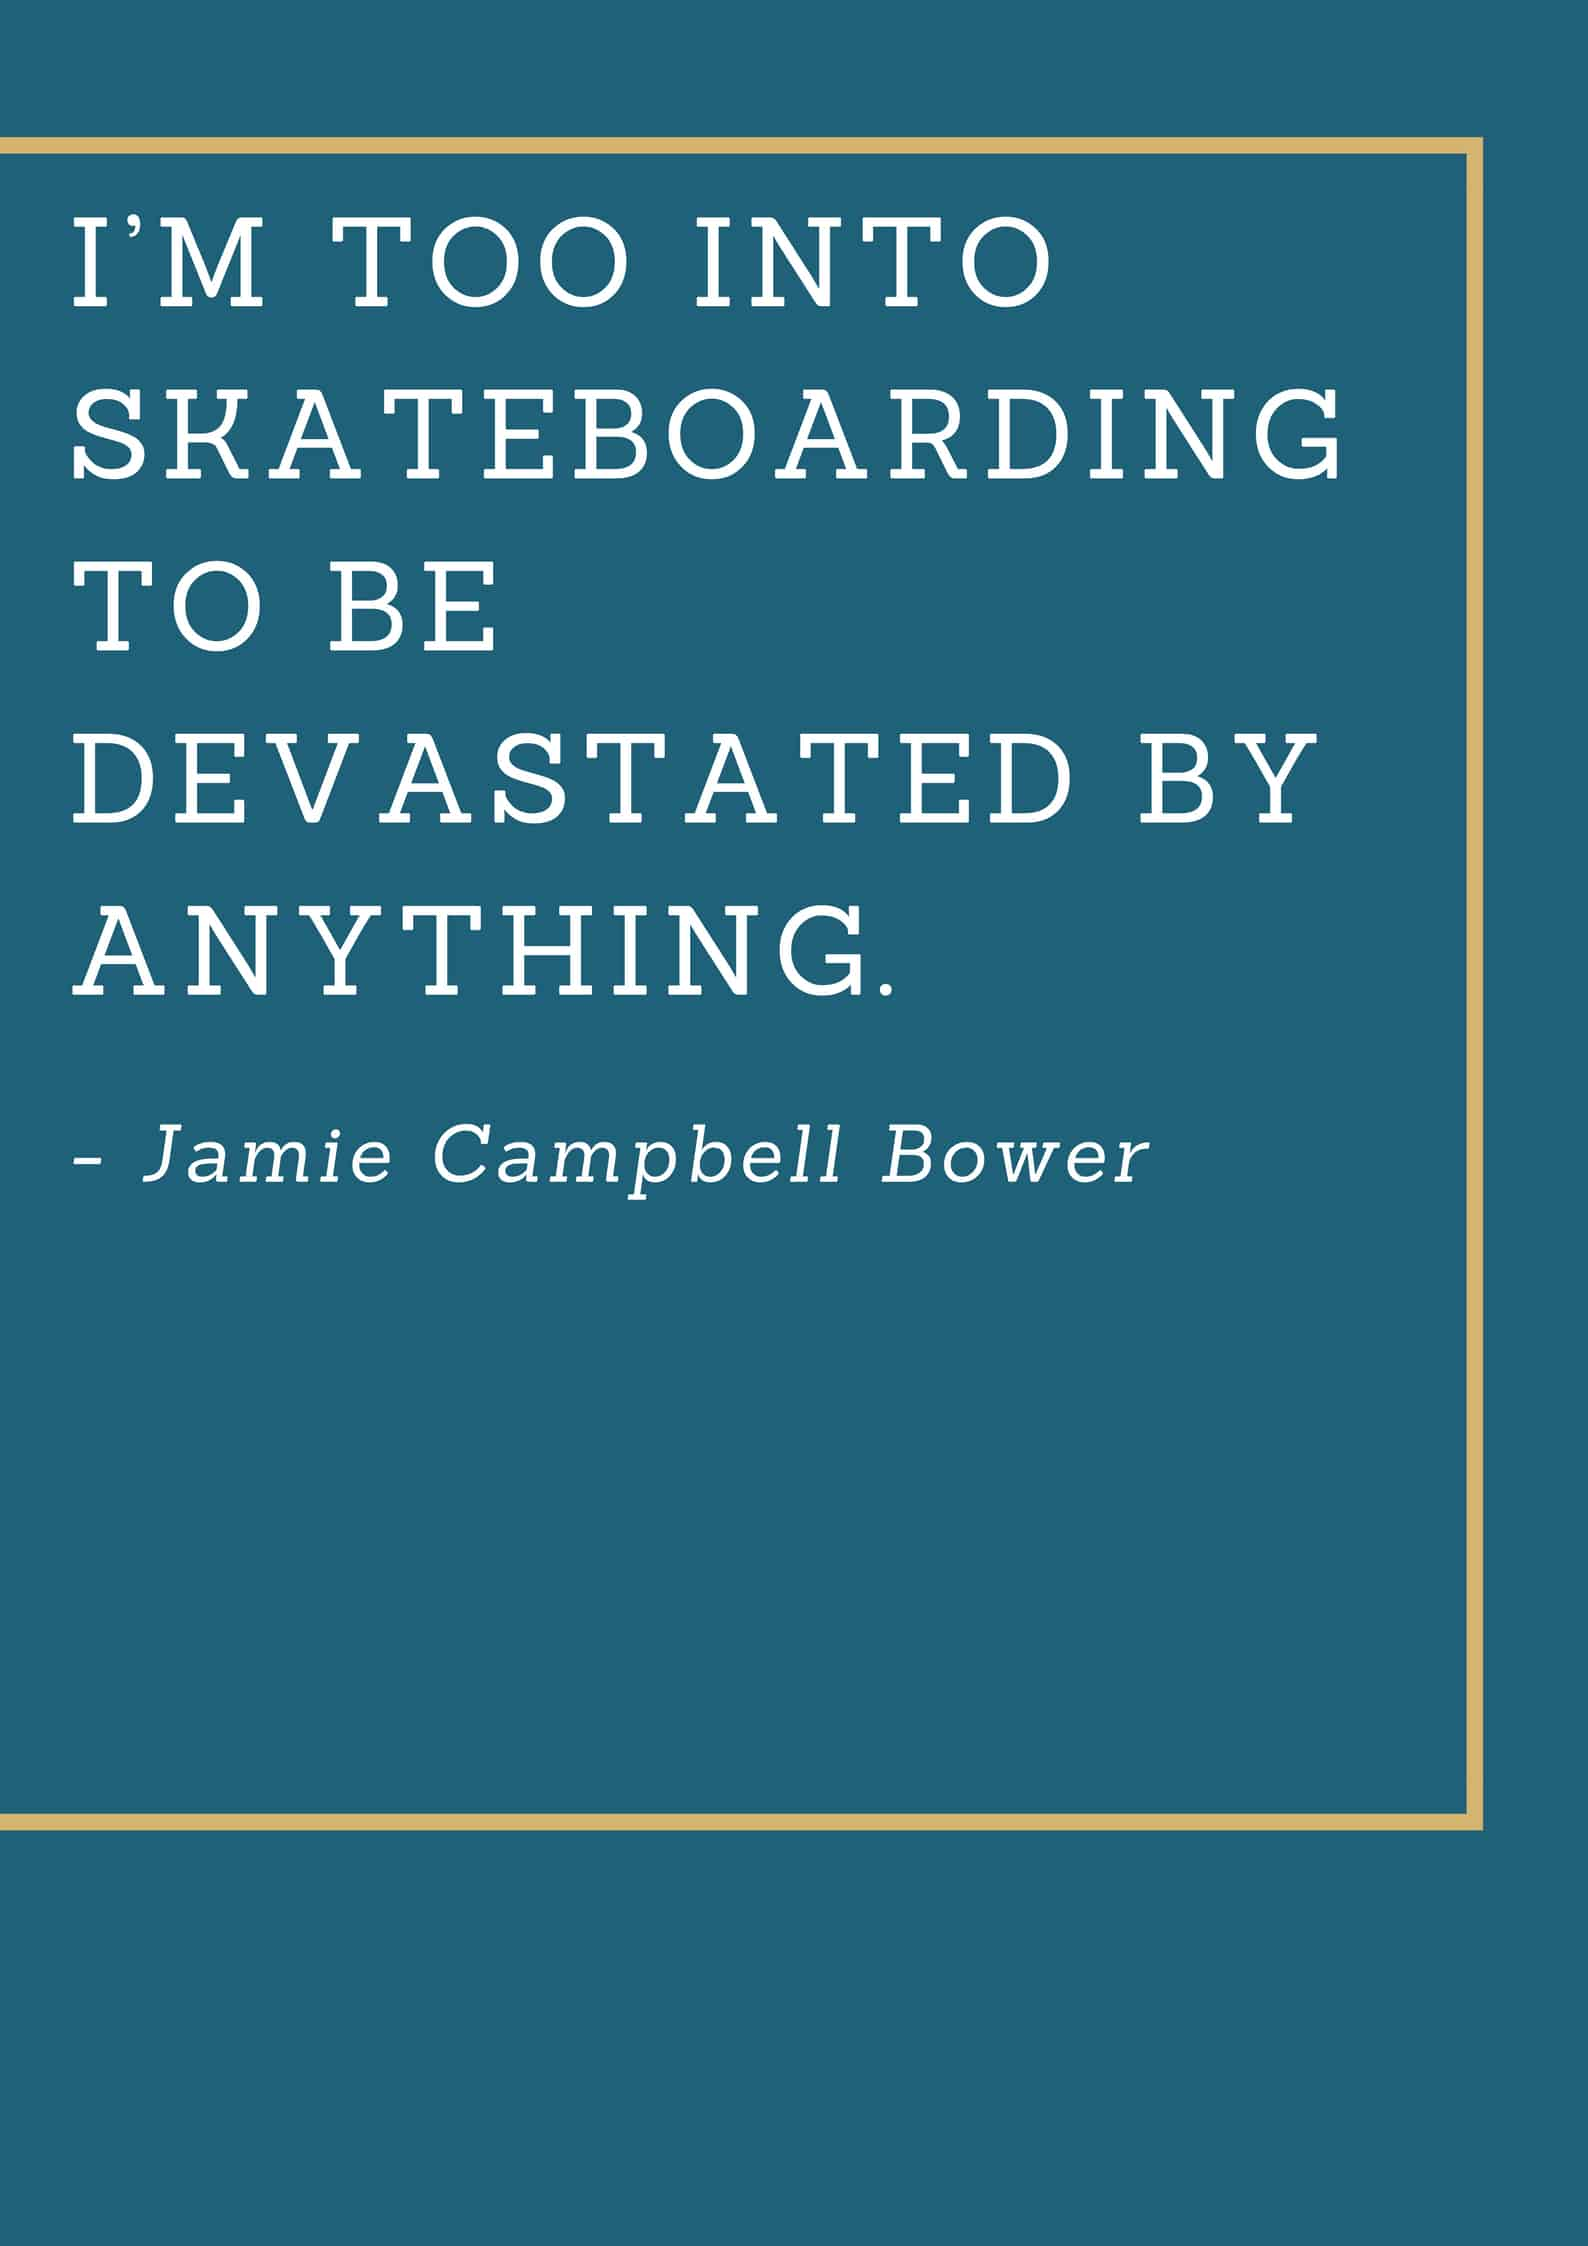 I'm too into skateboarding to be devastated by anything.